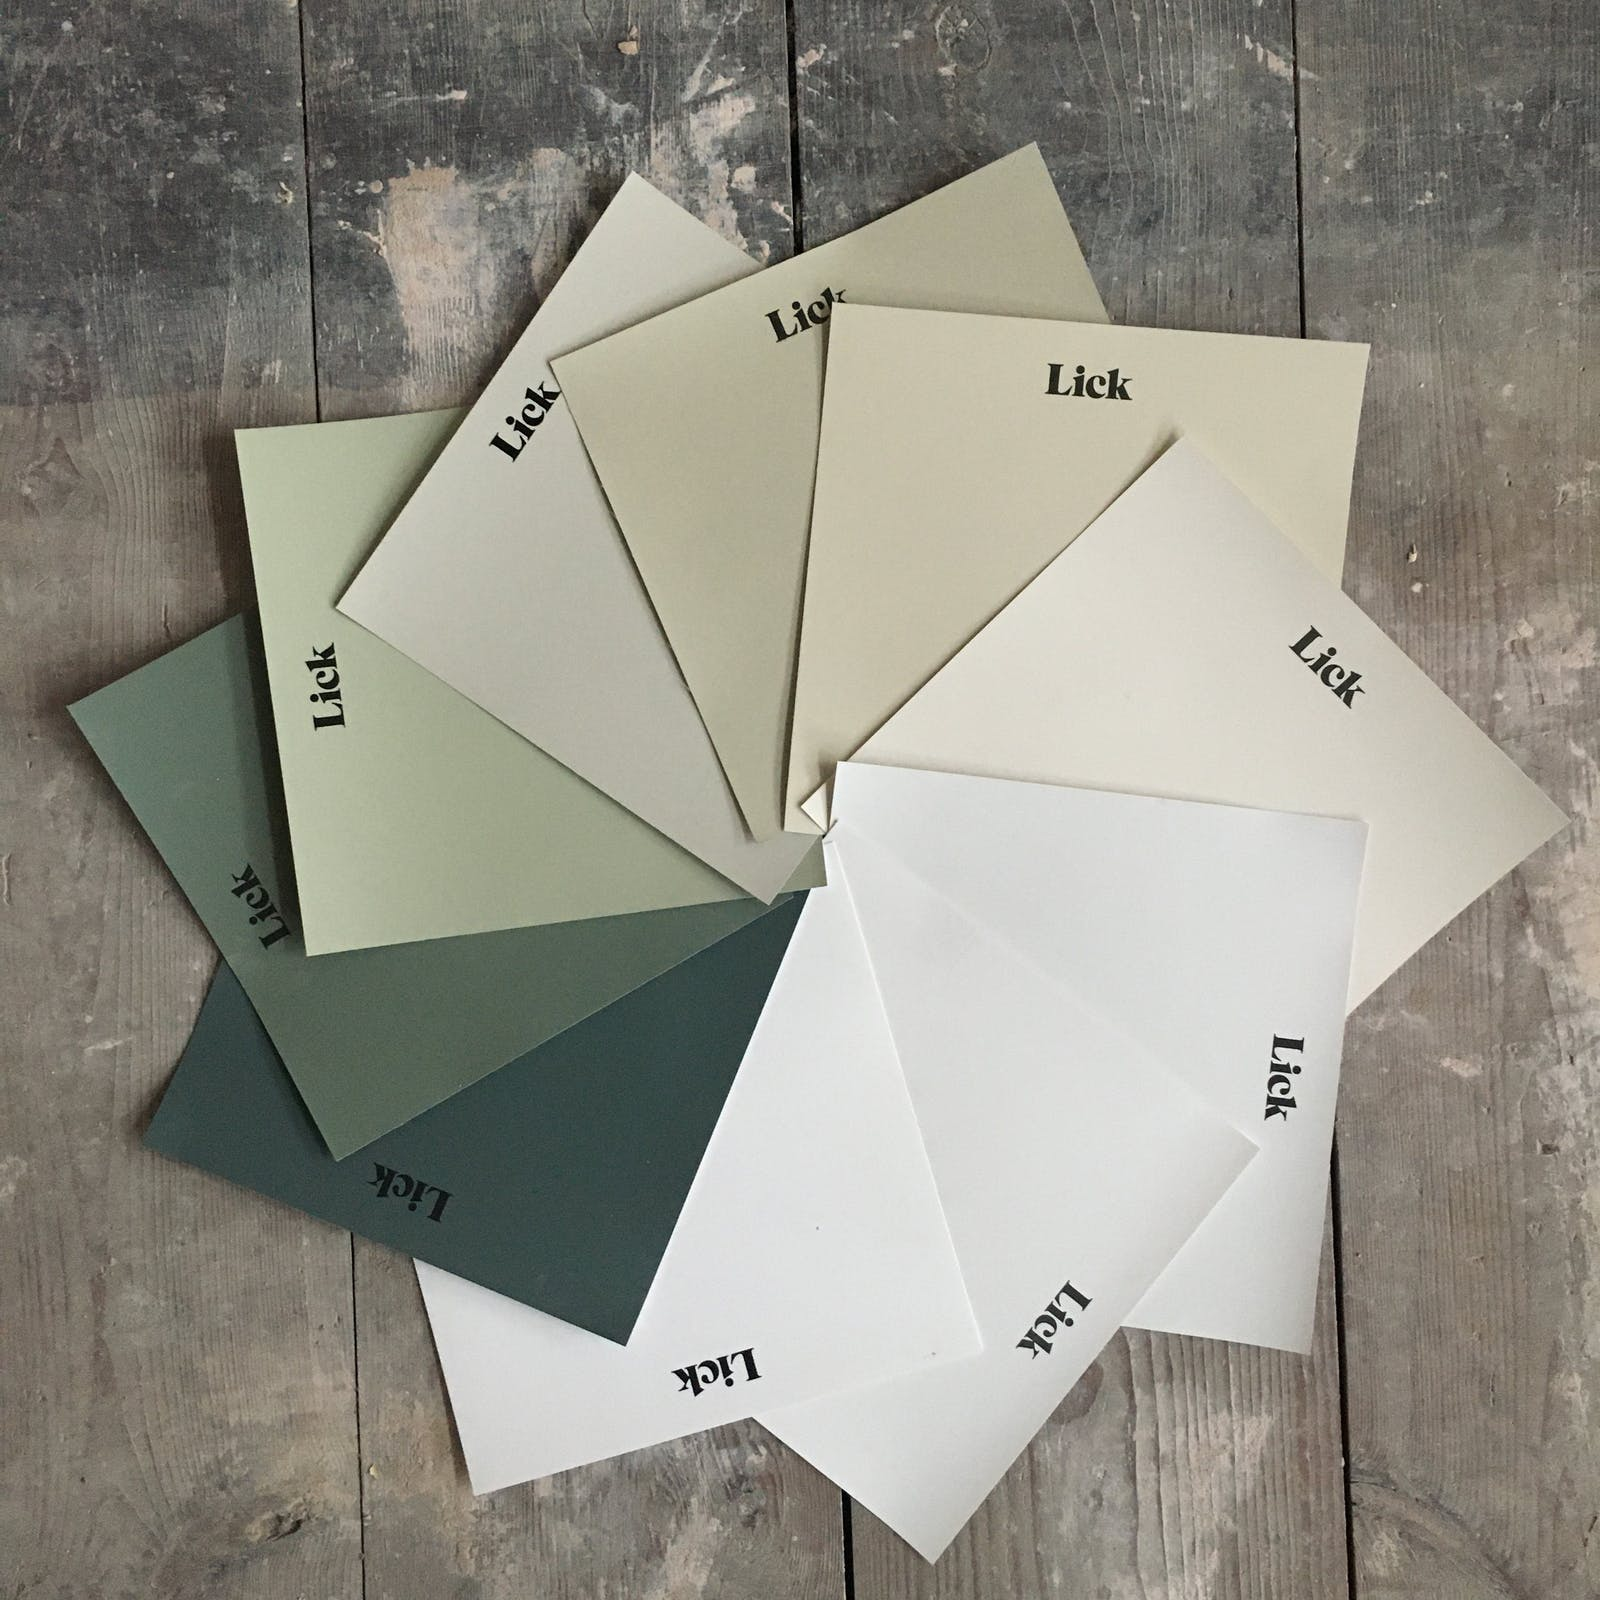 A display of Lick Green and White paint samples